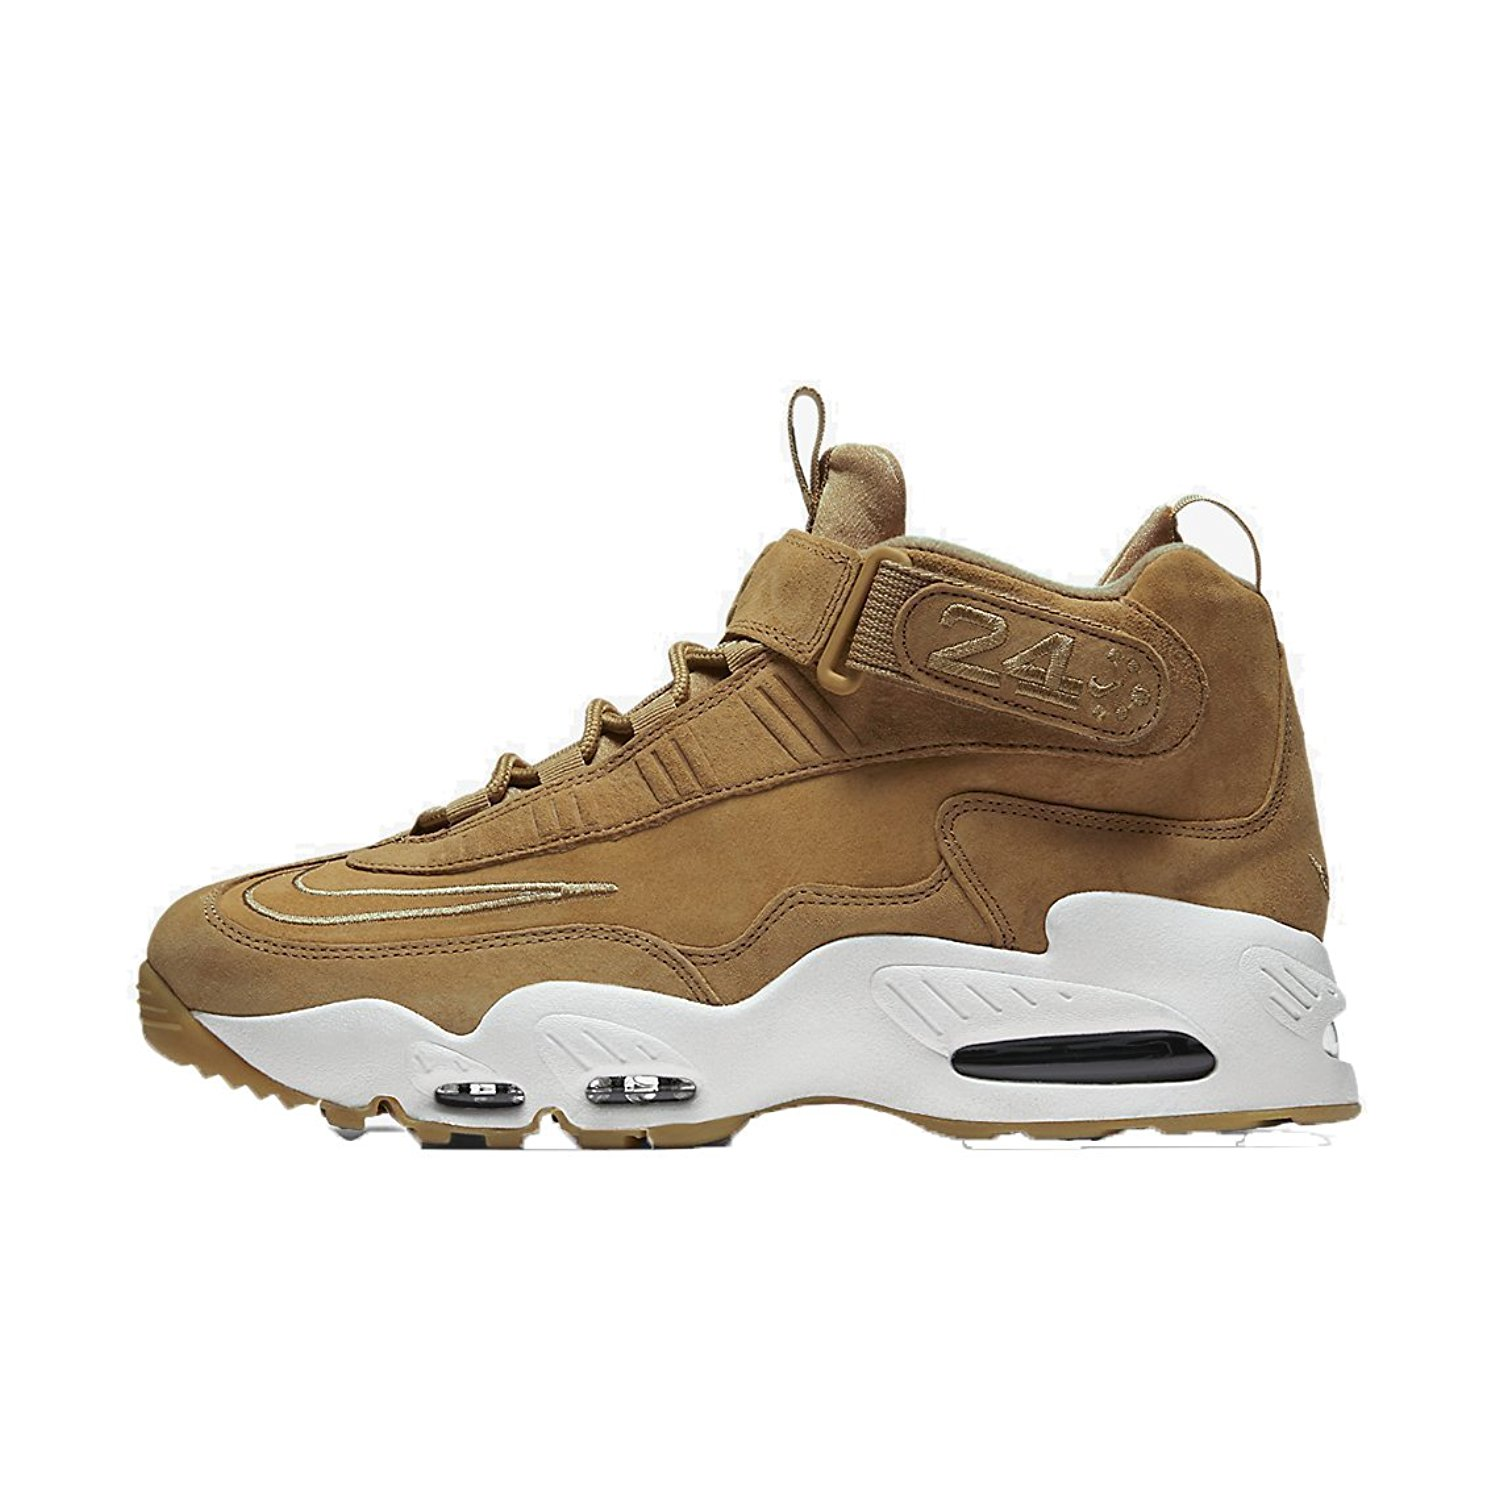 efa6236d0e Cheap Nike Air Griffey Max, find Nike Air Griffey Max deals on line ...